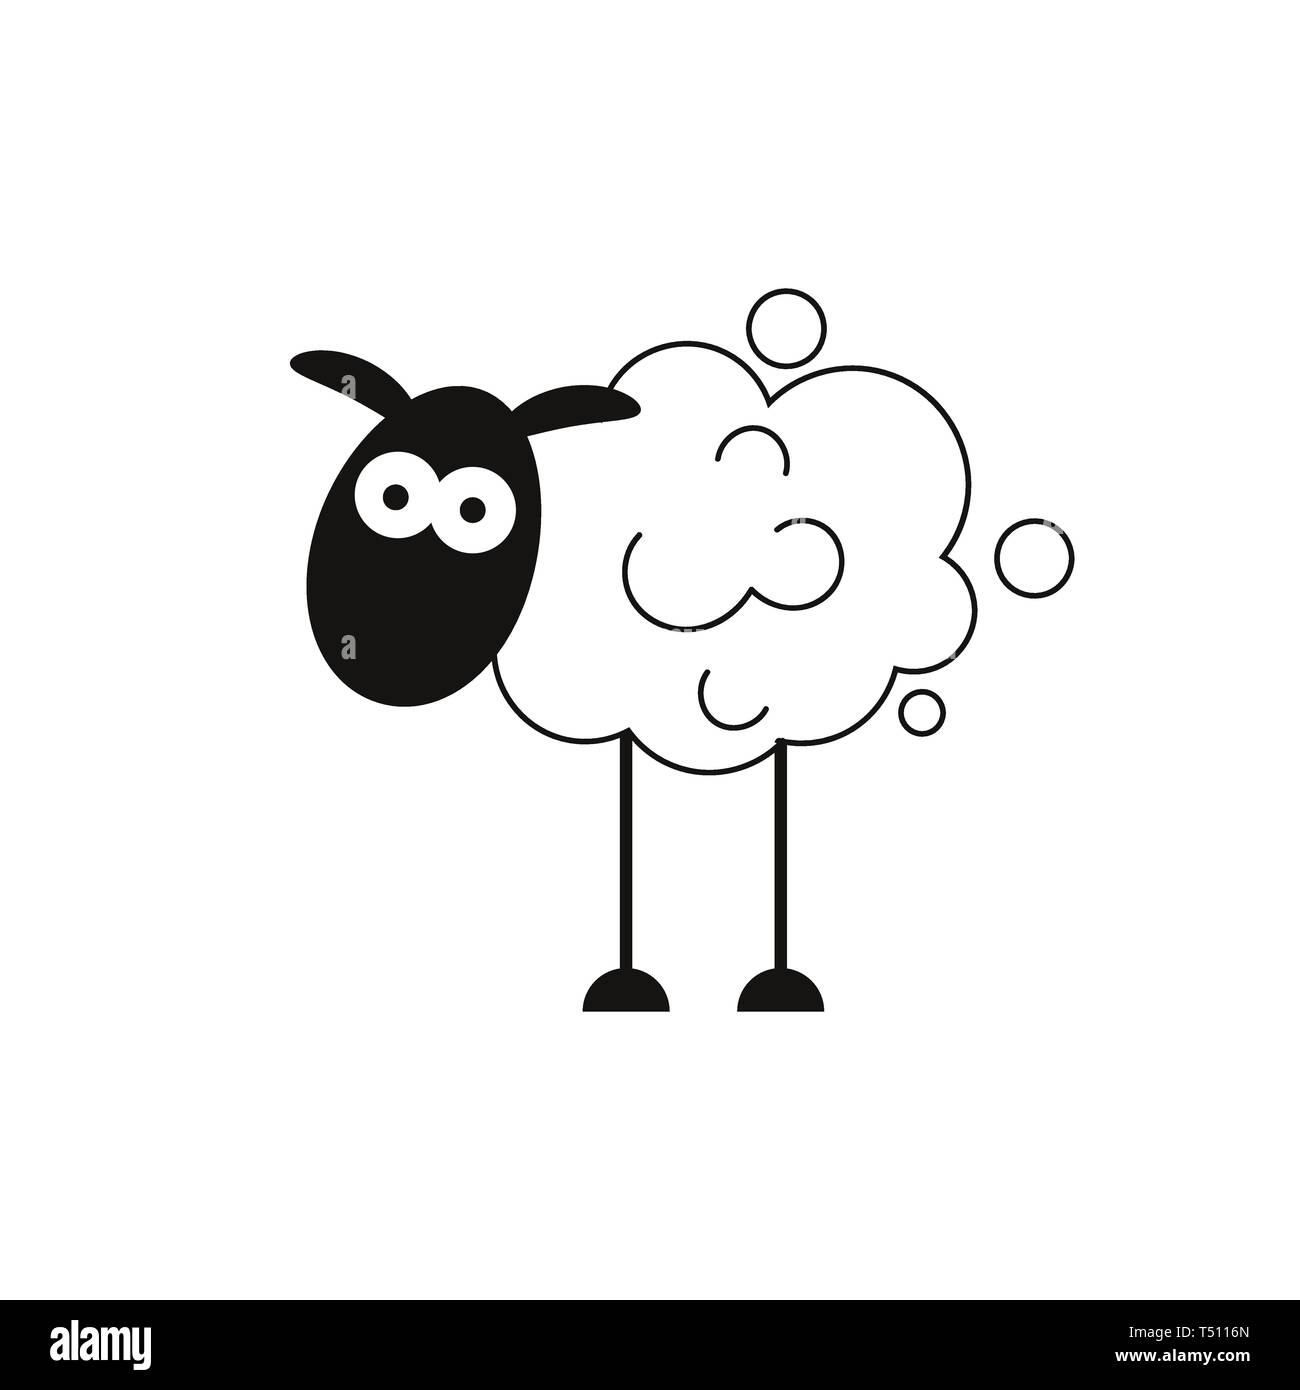 Lamb. Abstract Vector Sign, Symbol Or Logo Template. Hand Drawn Lamb Sillhouette With Retro Typography. - Stock Image